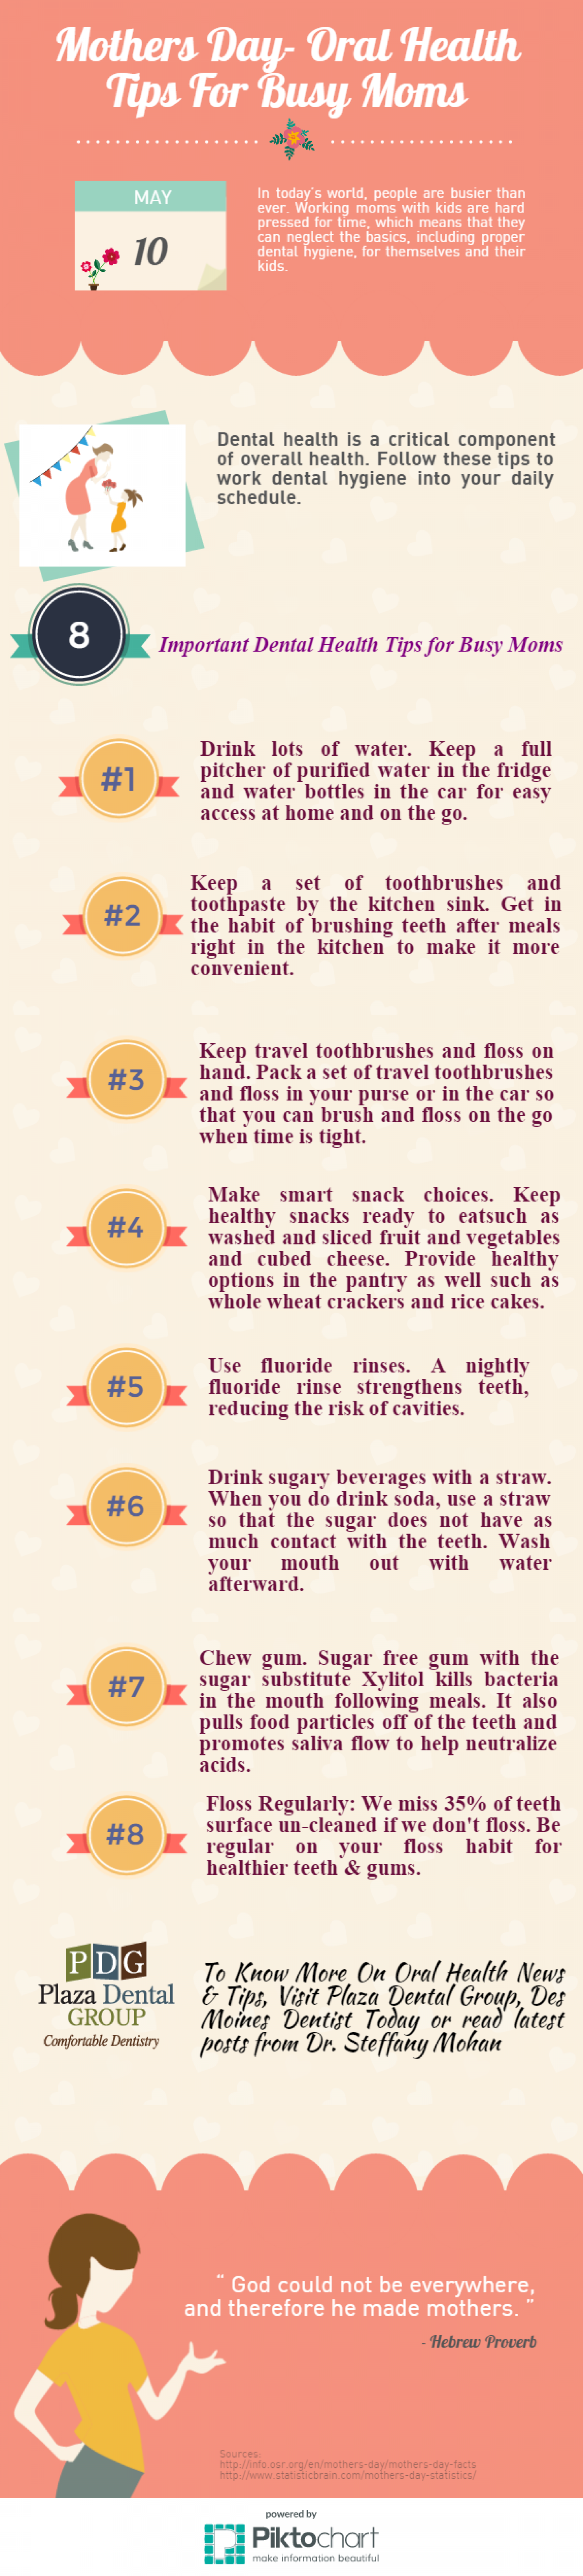 Top Oral Health Tips For Busy Moms This Mother's Day  Infographic